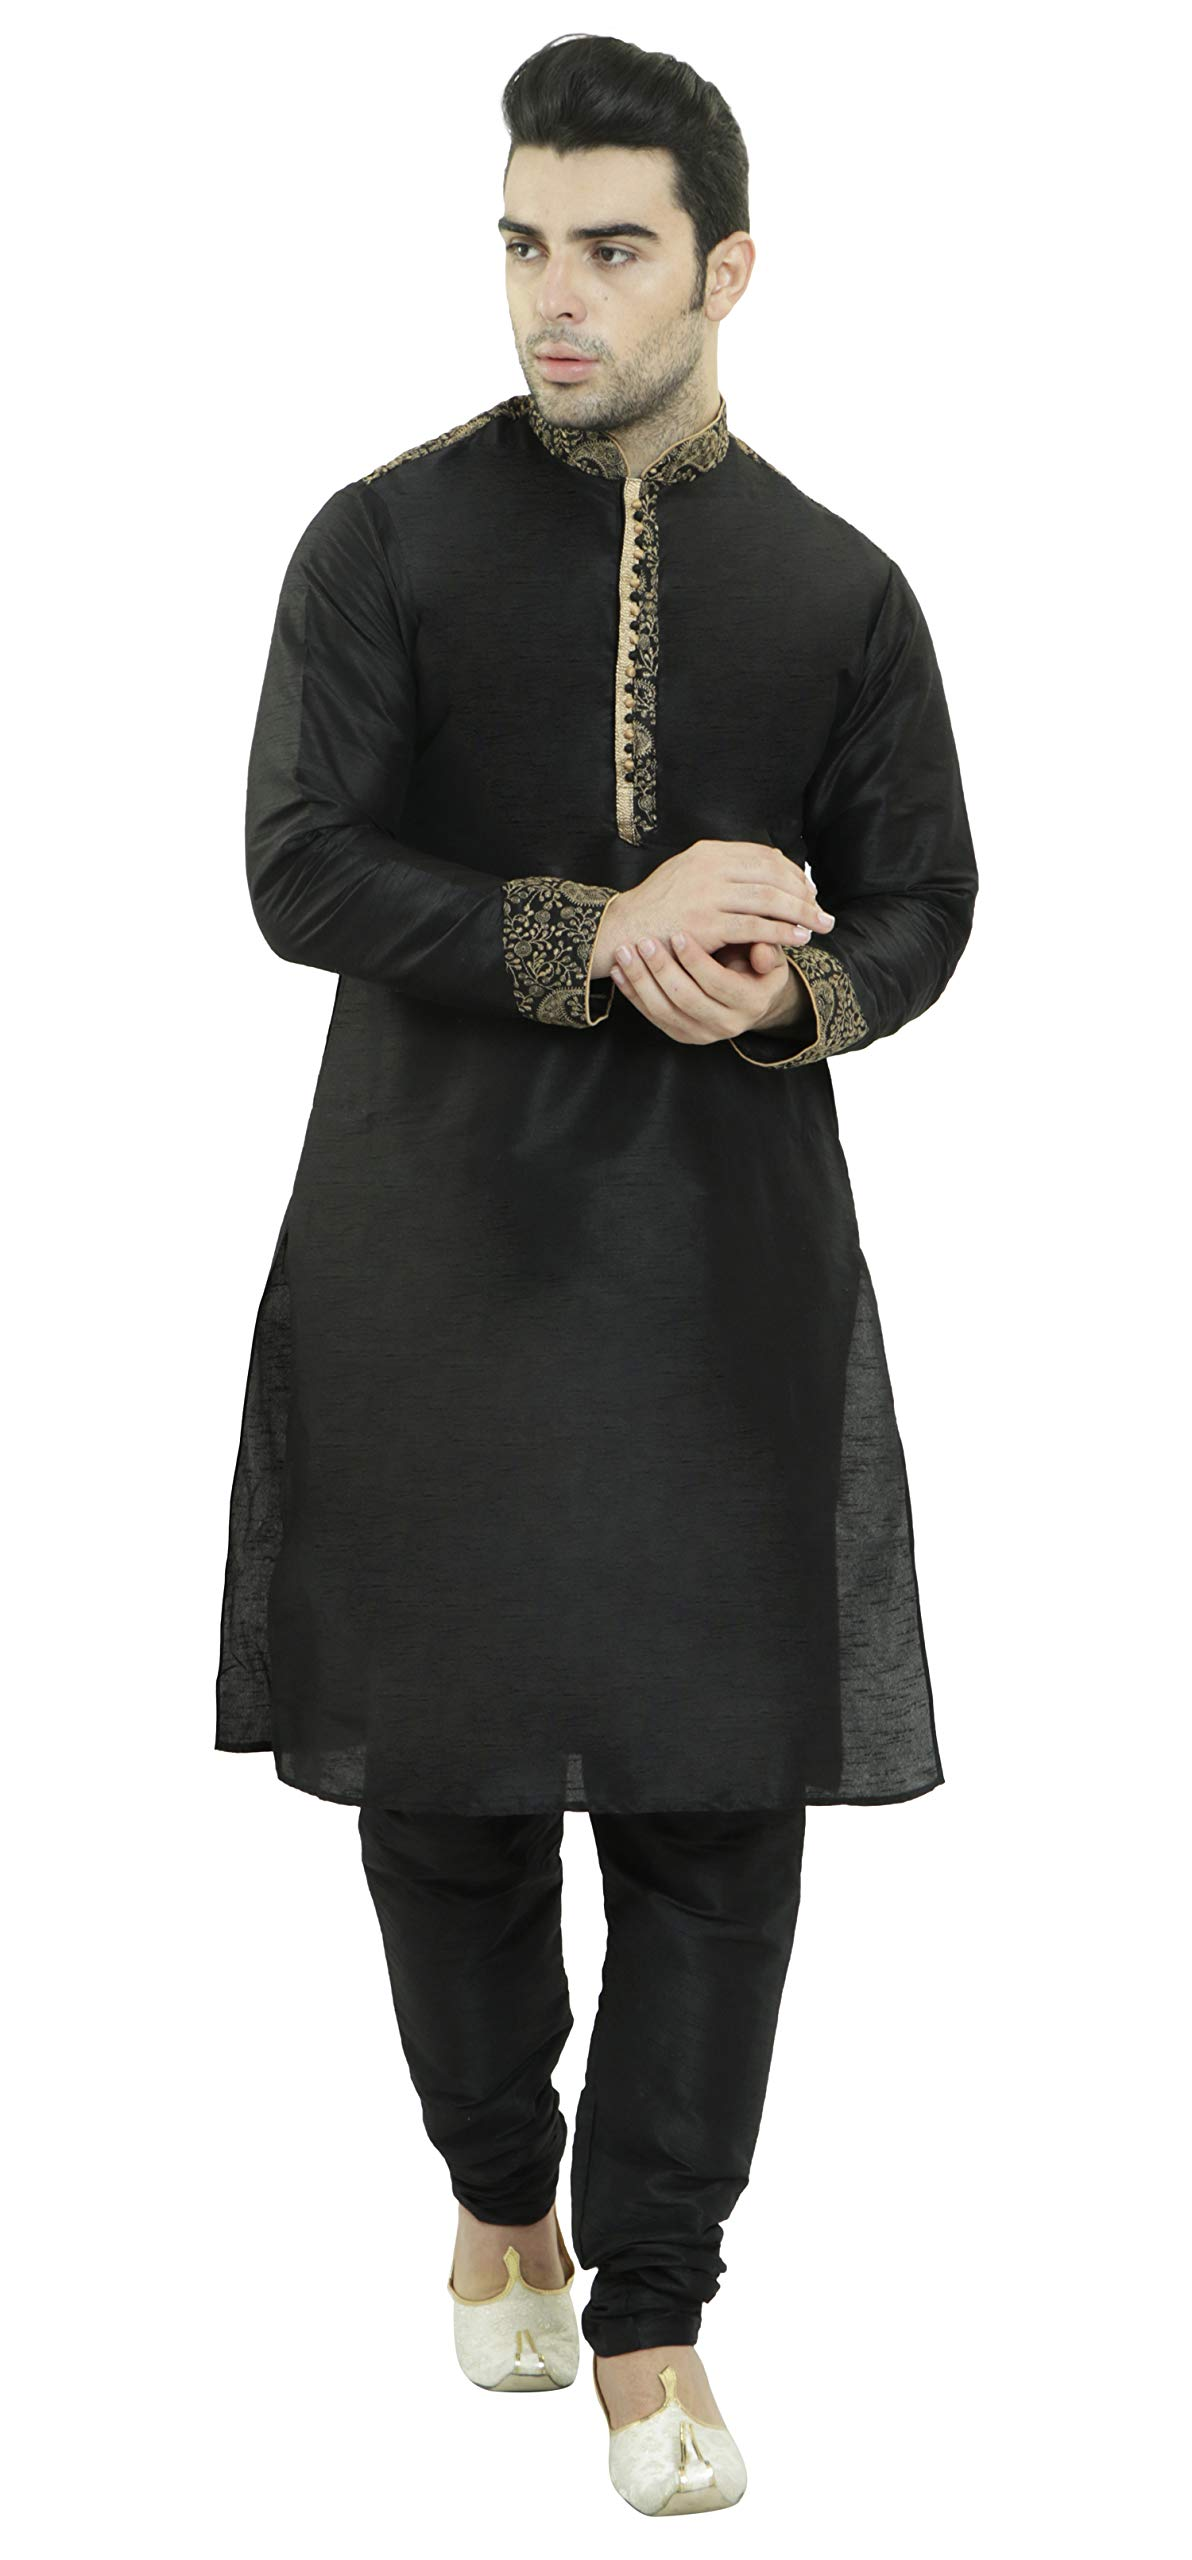 Mens Black Kurta Pajama Long Sleeve Hook & Eye Shirt Indian Clothing Fashion Ethnic Dress -L